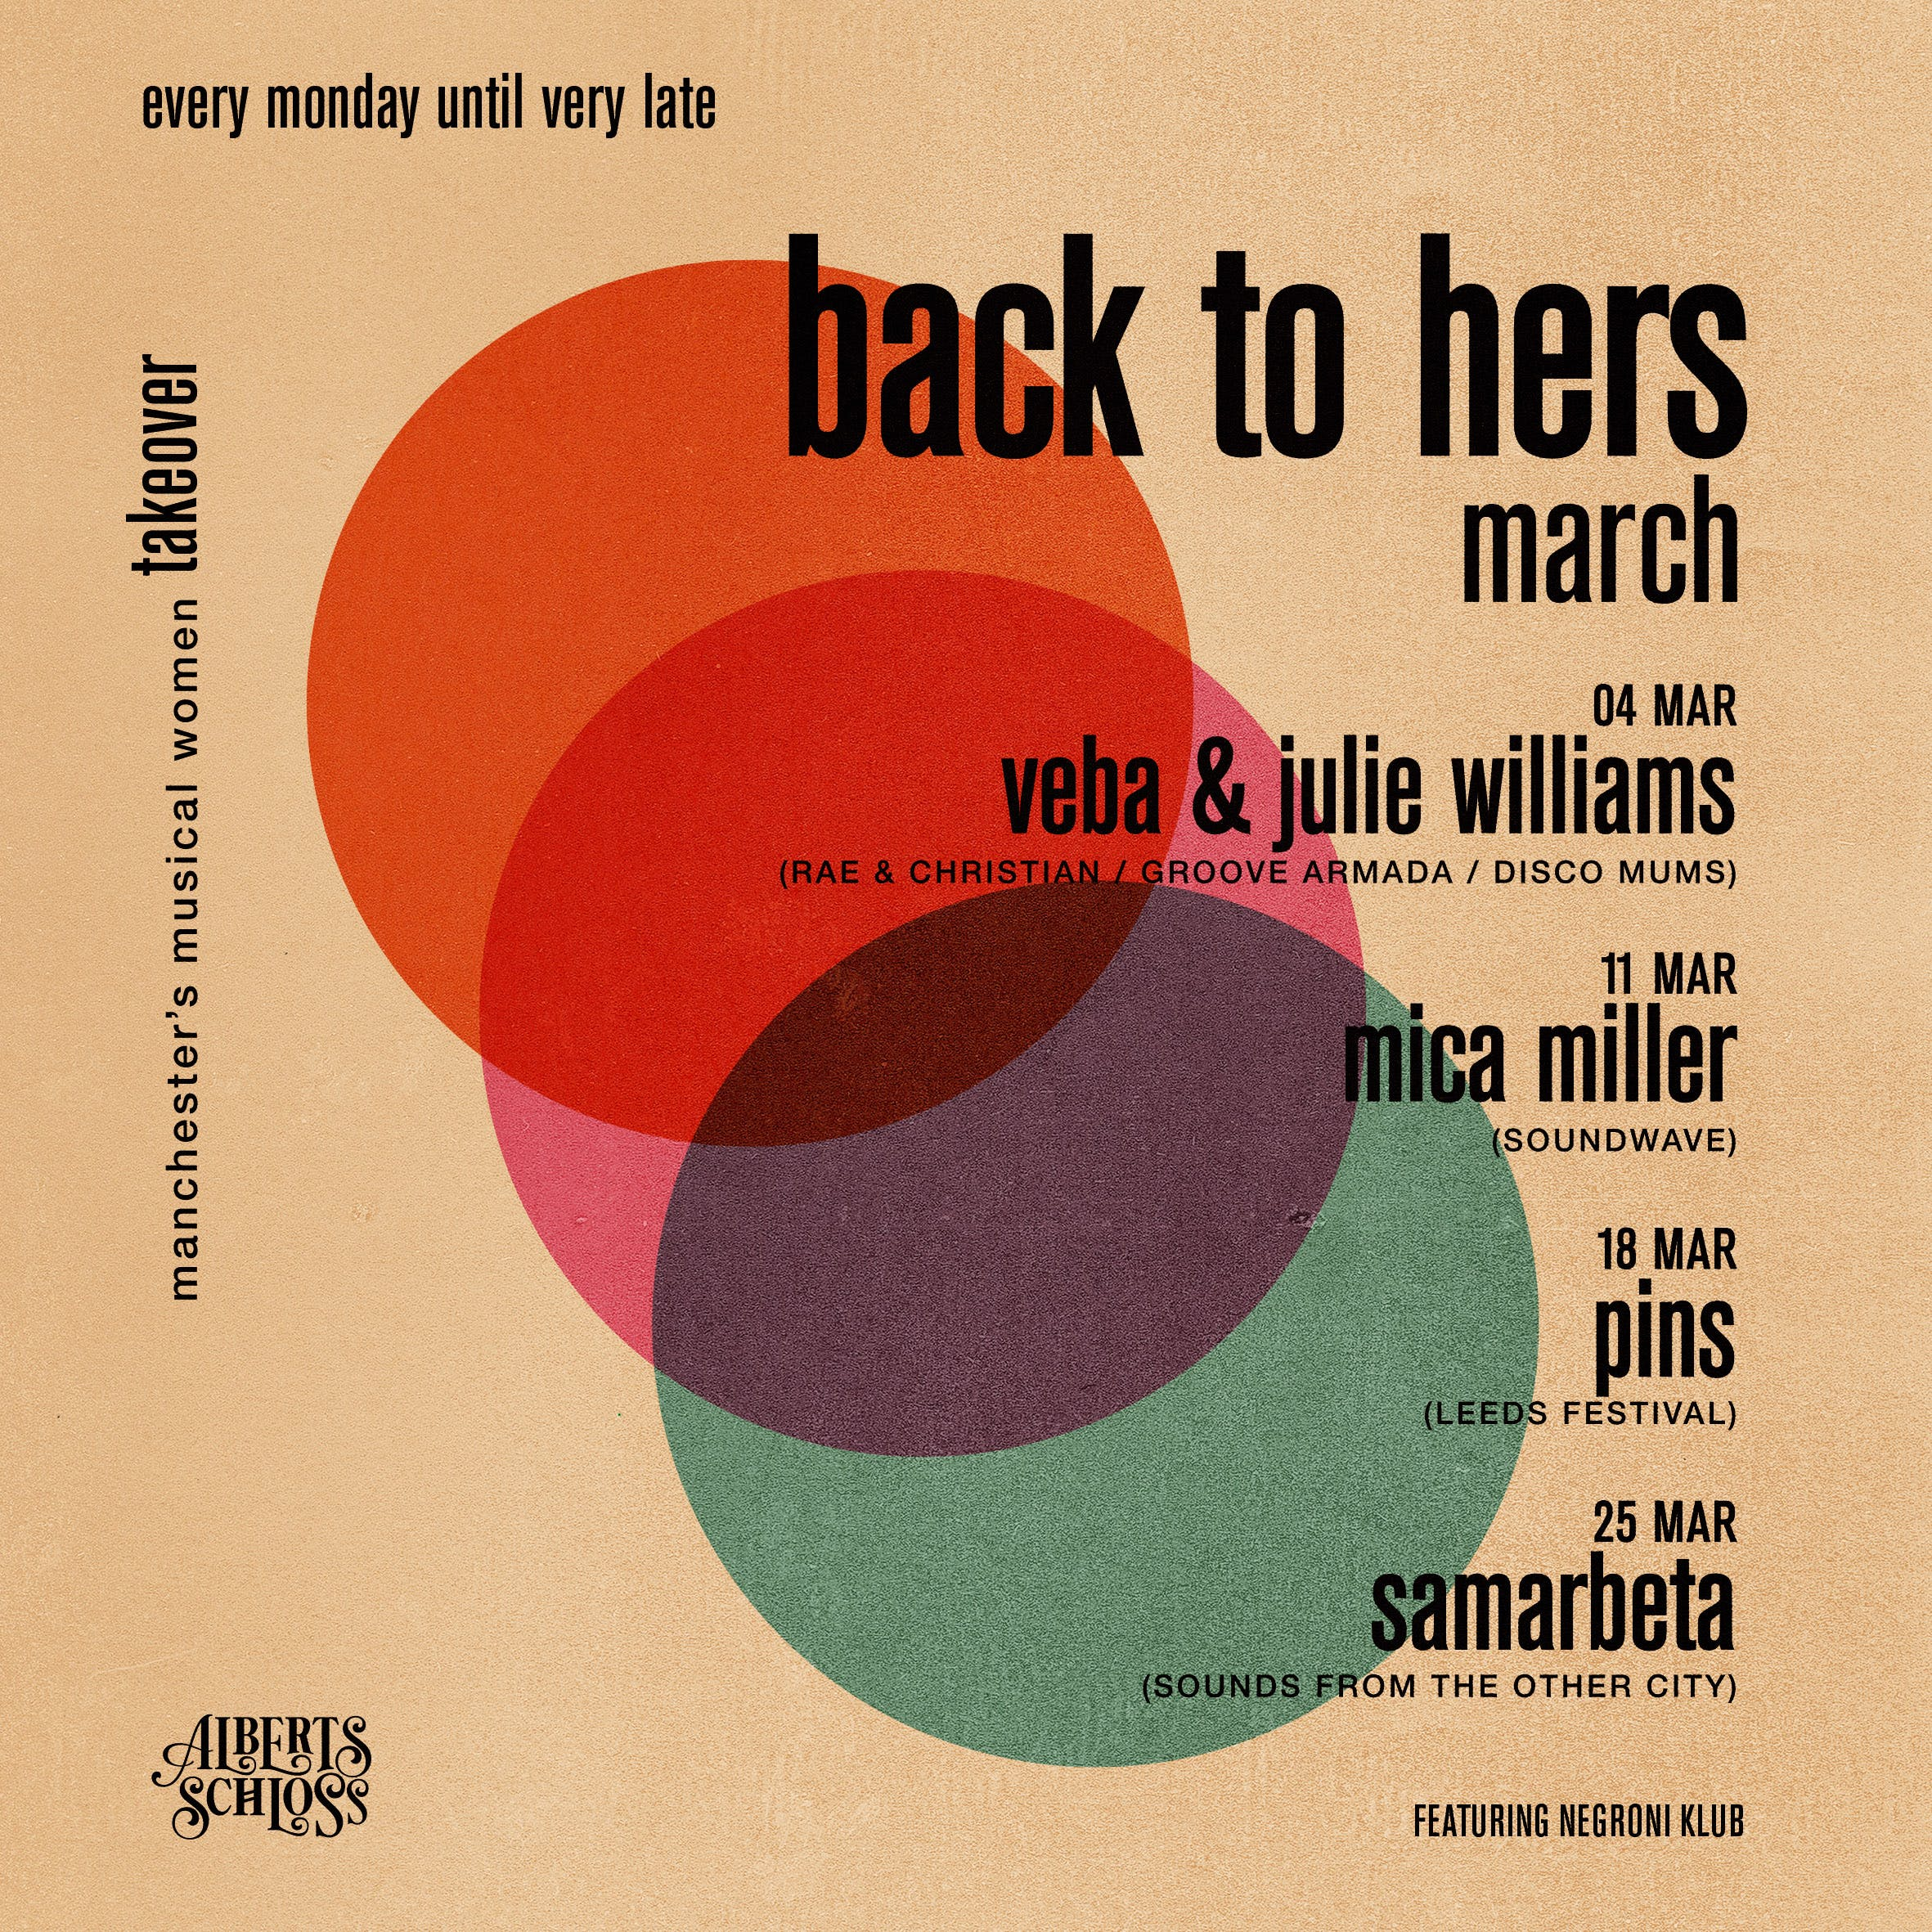 BACK TO HERS MARCH // MCR'S MUSICAL WOMEN